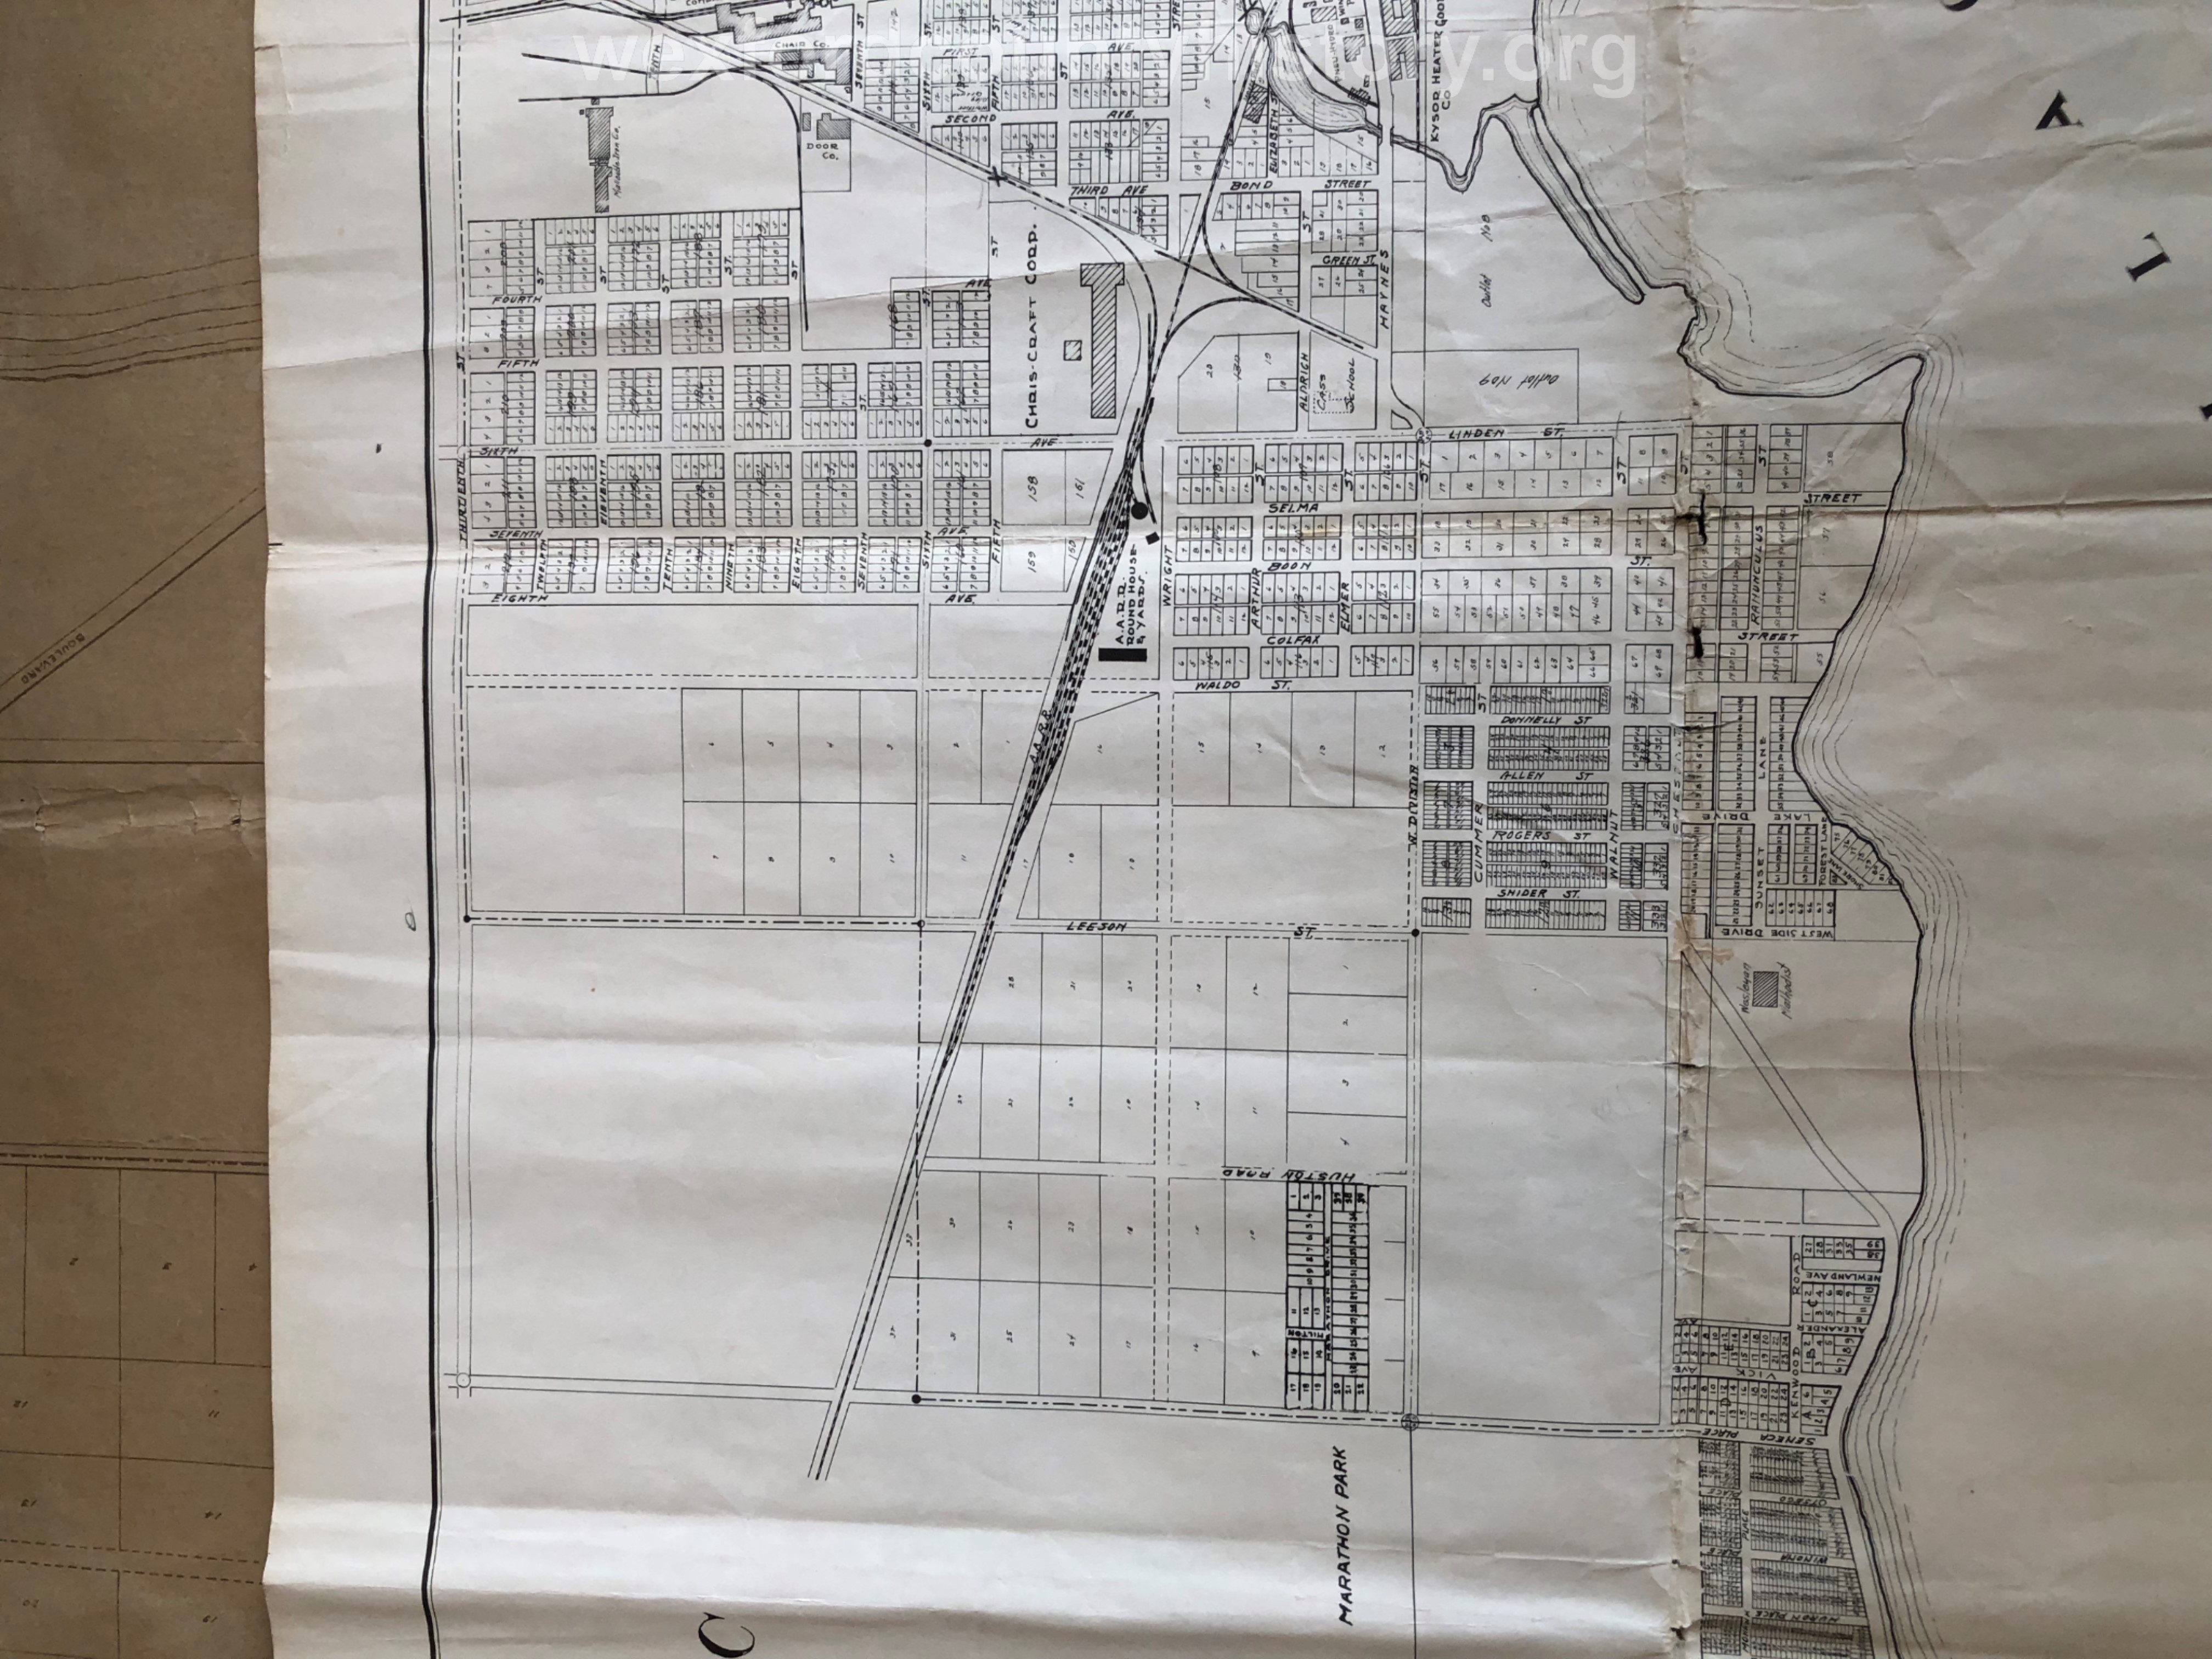 1952 - Revision Plat Map Of The City Of Cadillac